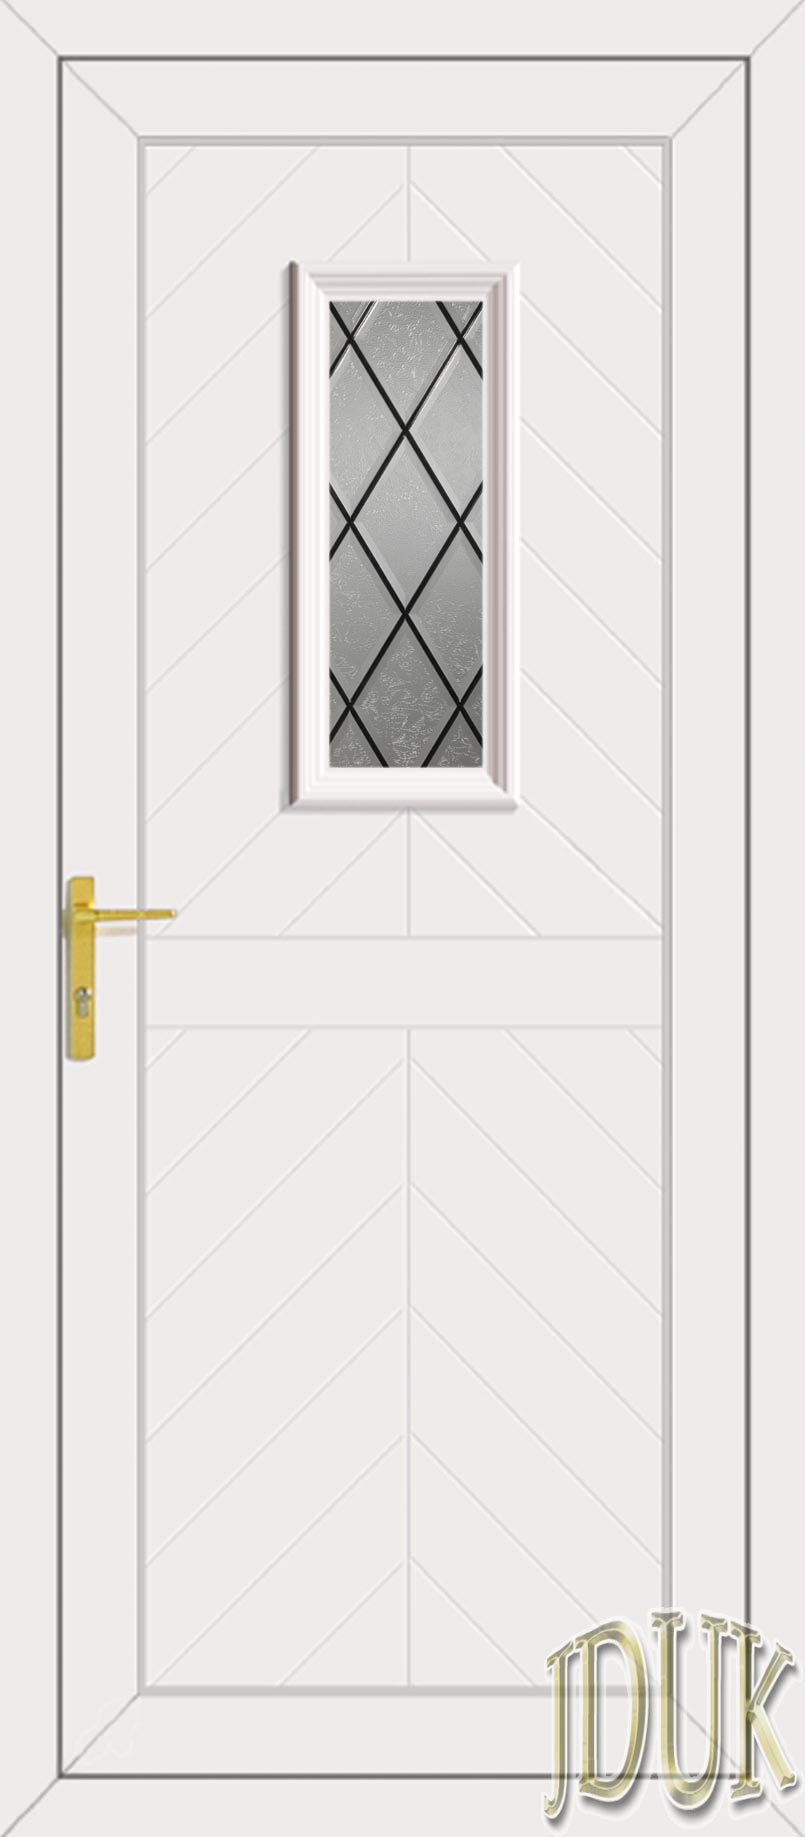 Monroe One Diamond Lead UPVC Cottage Door  sc 1 st  Just Doors UK & One Diamond Lead UPVC Cottage Door